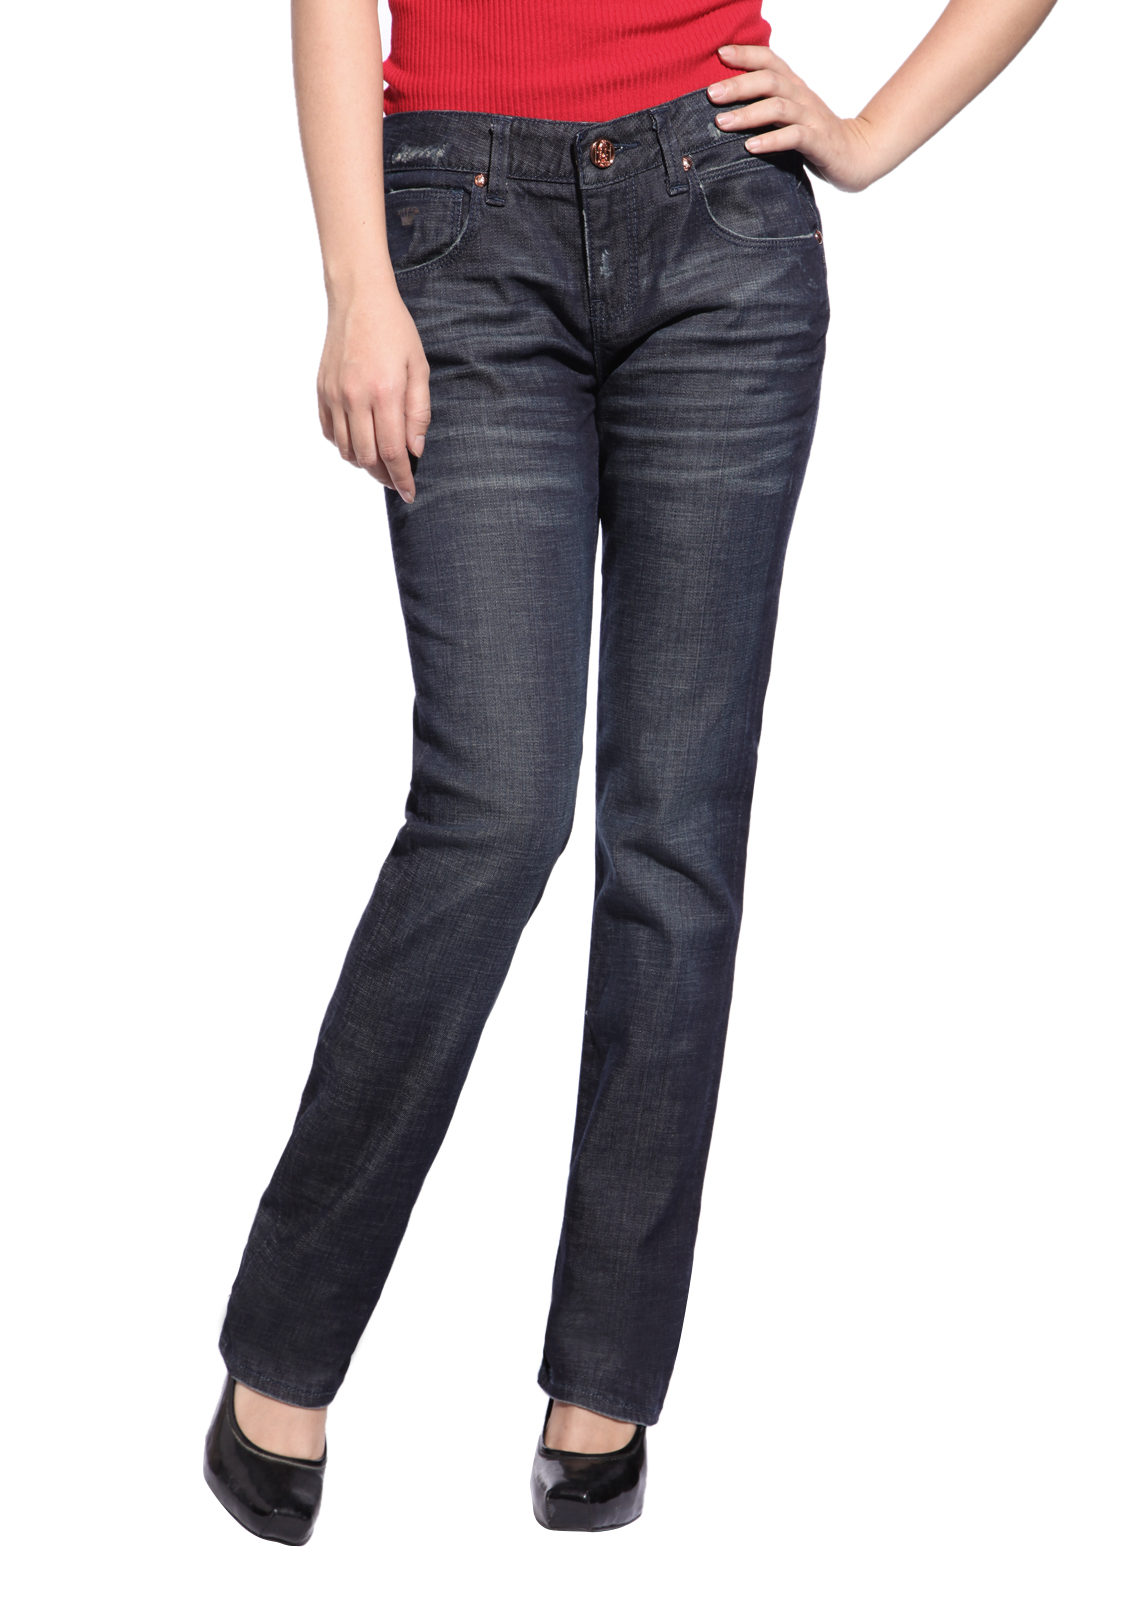 Free shipping and returns on women's straight-leg jeans at metrdisk.cf Shop by rise, wash, size, brand, color and more. Check out our entire collection.